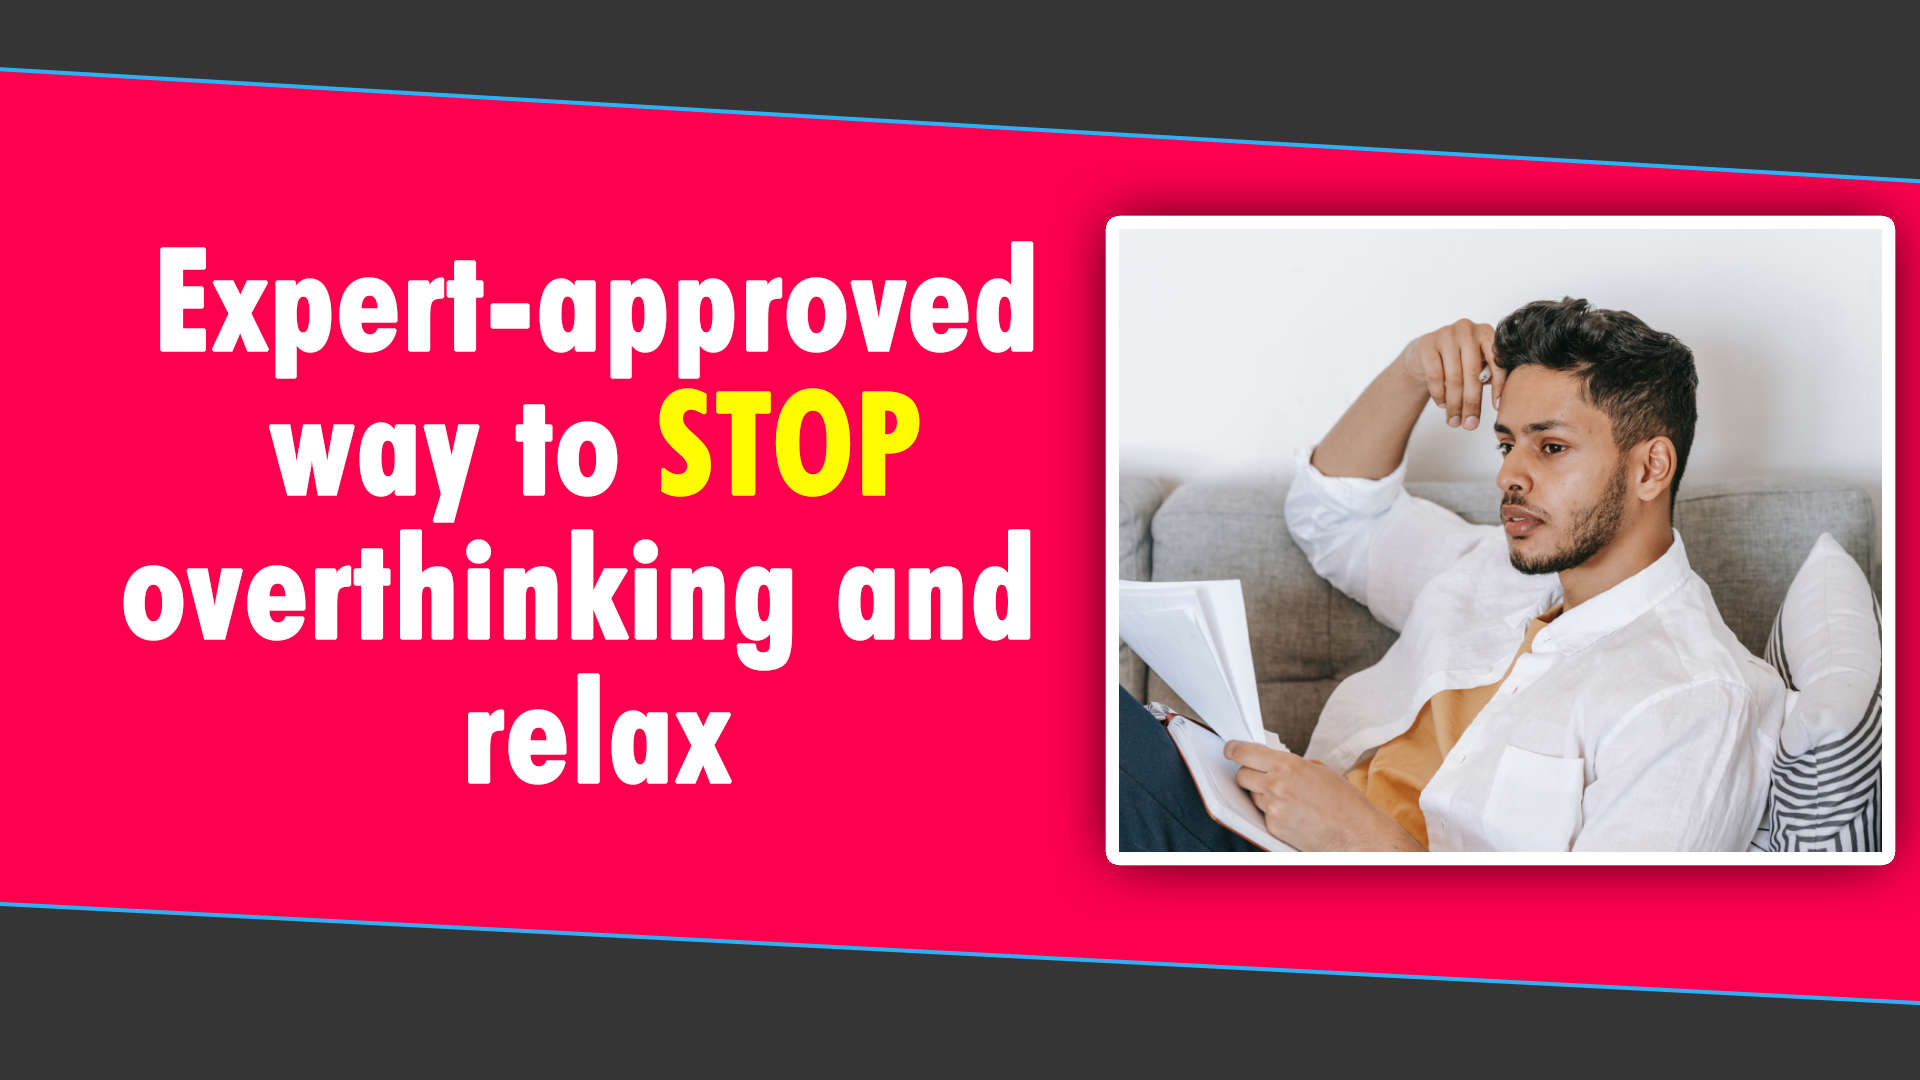 lifelineseries-expert-approved-way-to-stop-overthinking-and-relax